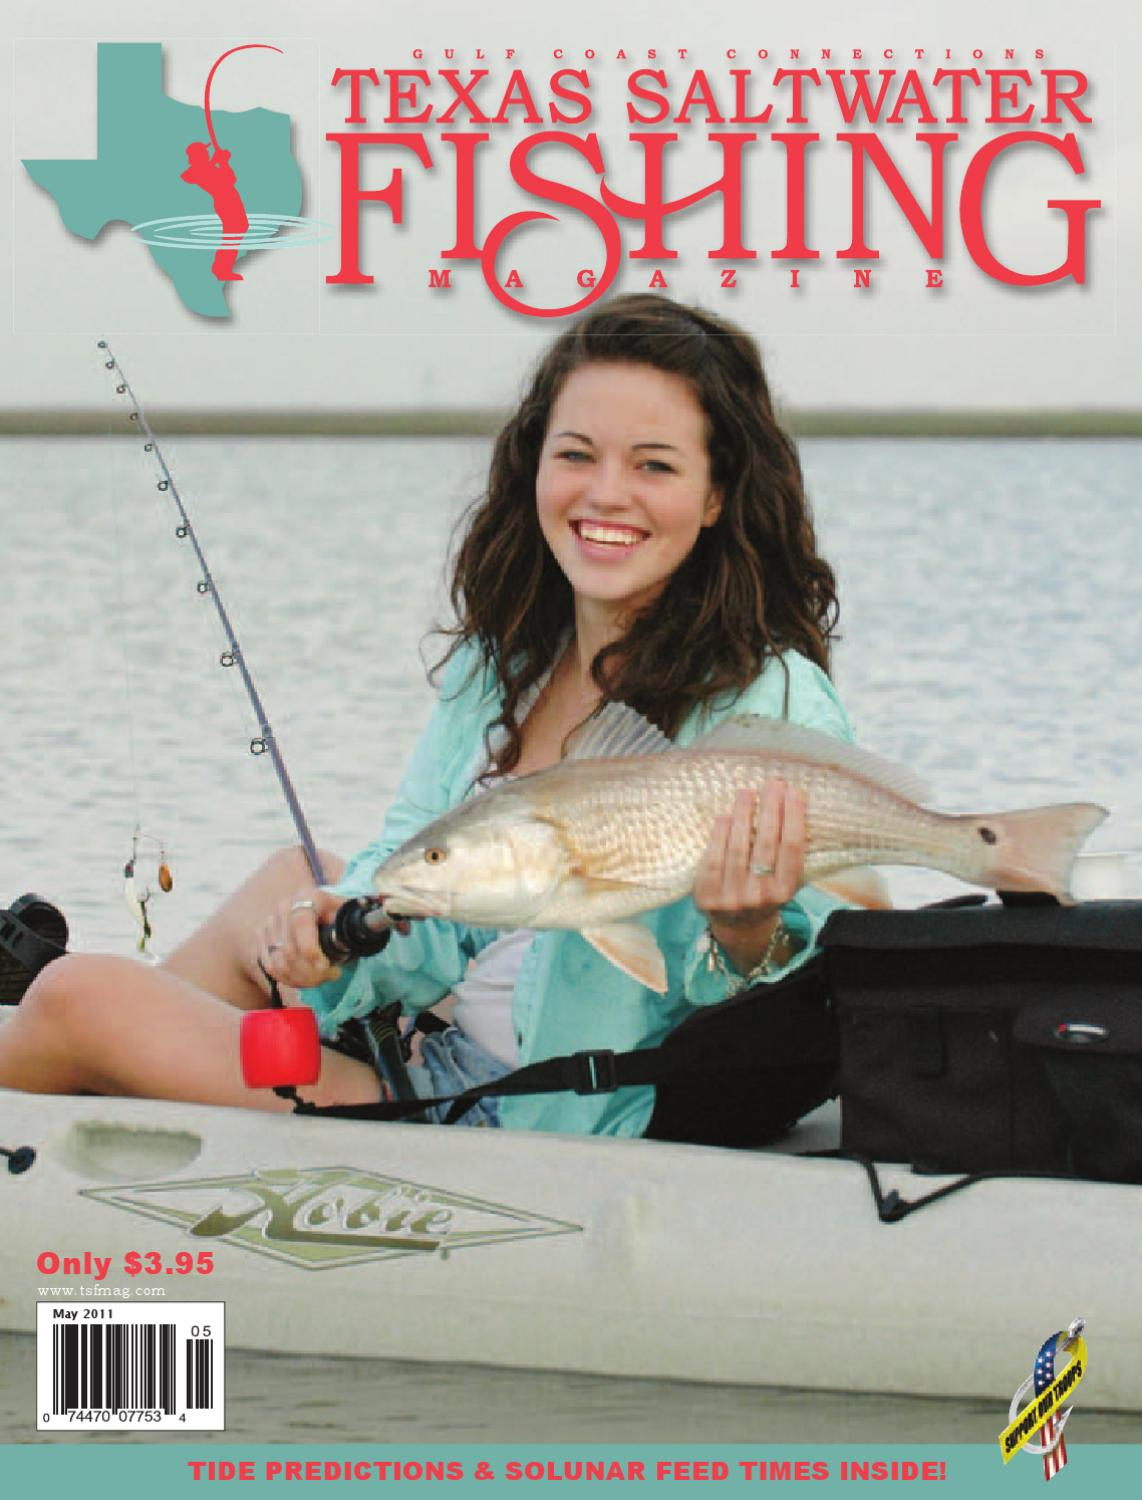 May 2011 by texas salwater fishing magazine issuu for Texas saltwater fishing magazine